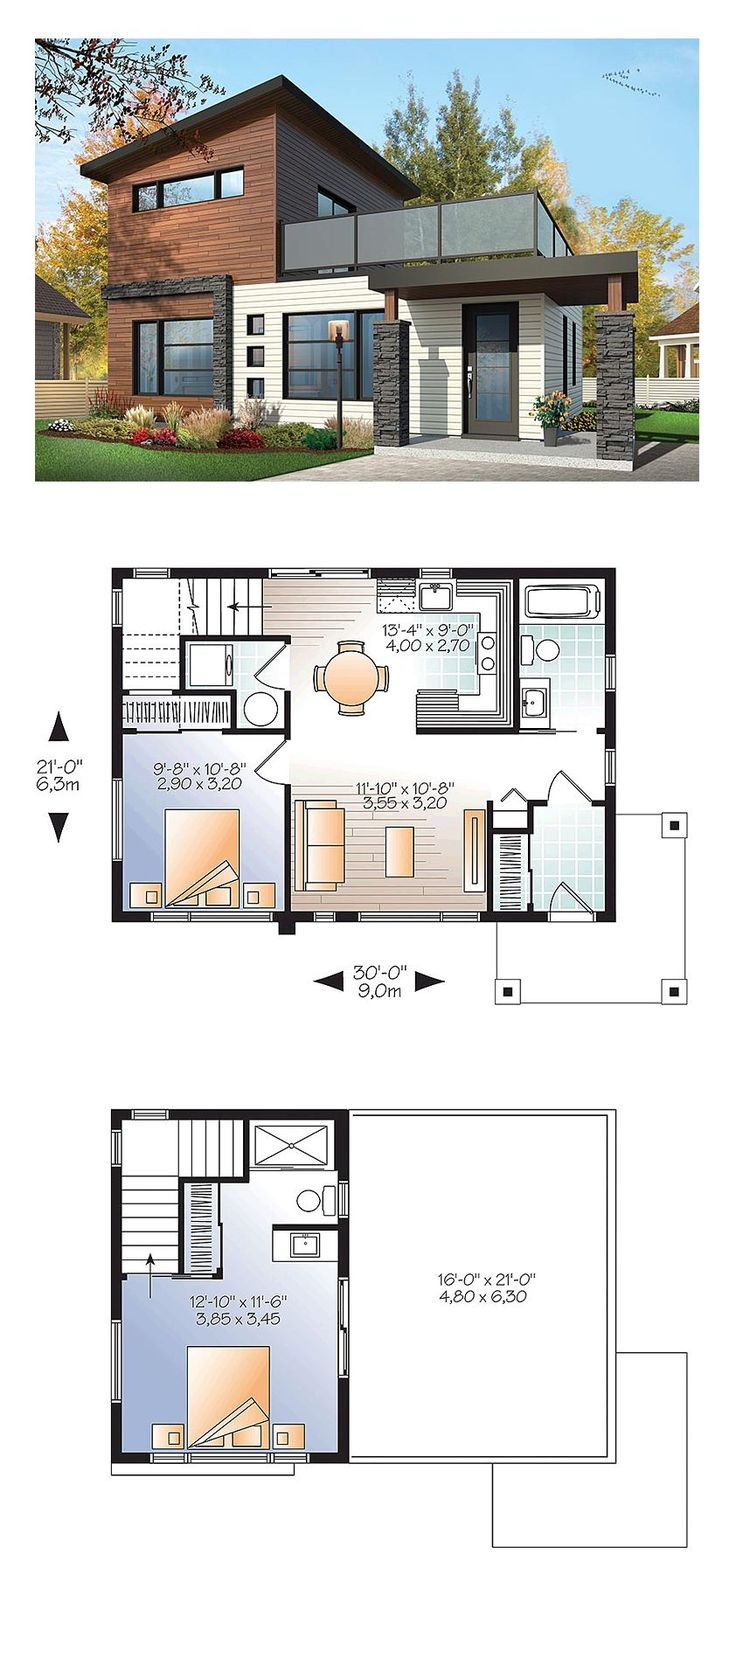 Architecture House Design Plans 25+ best small modern house plans ideas on pinterest | modern